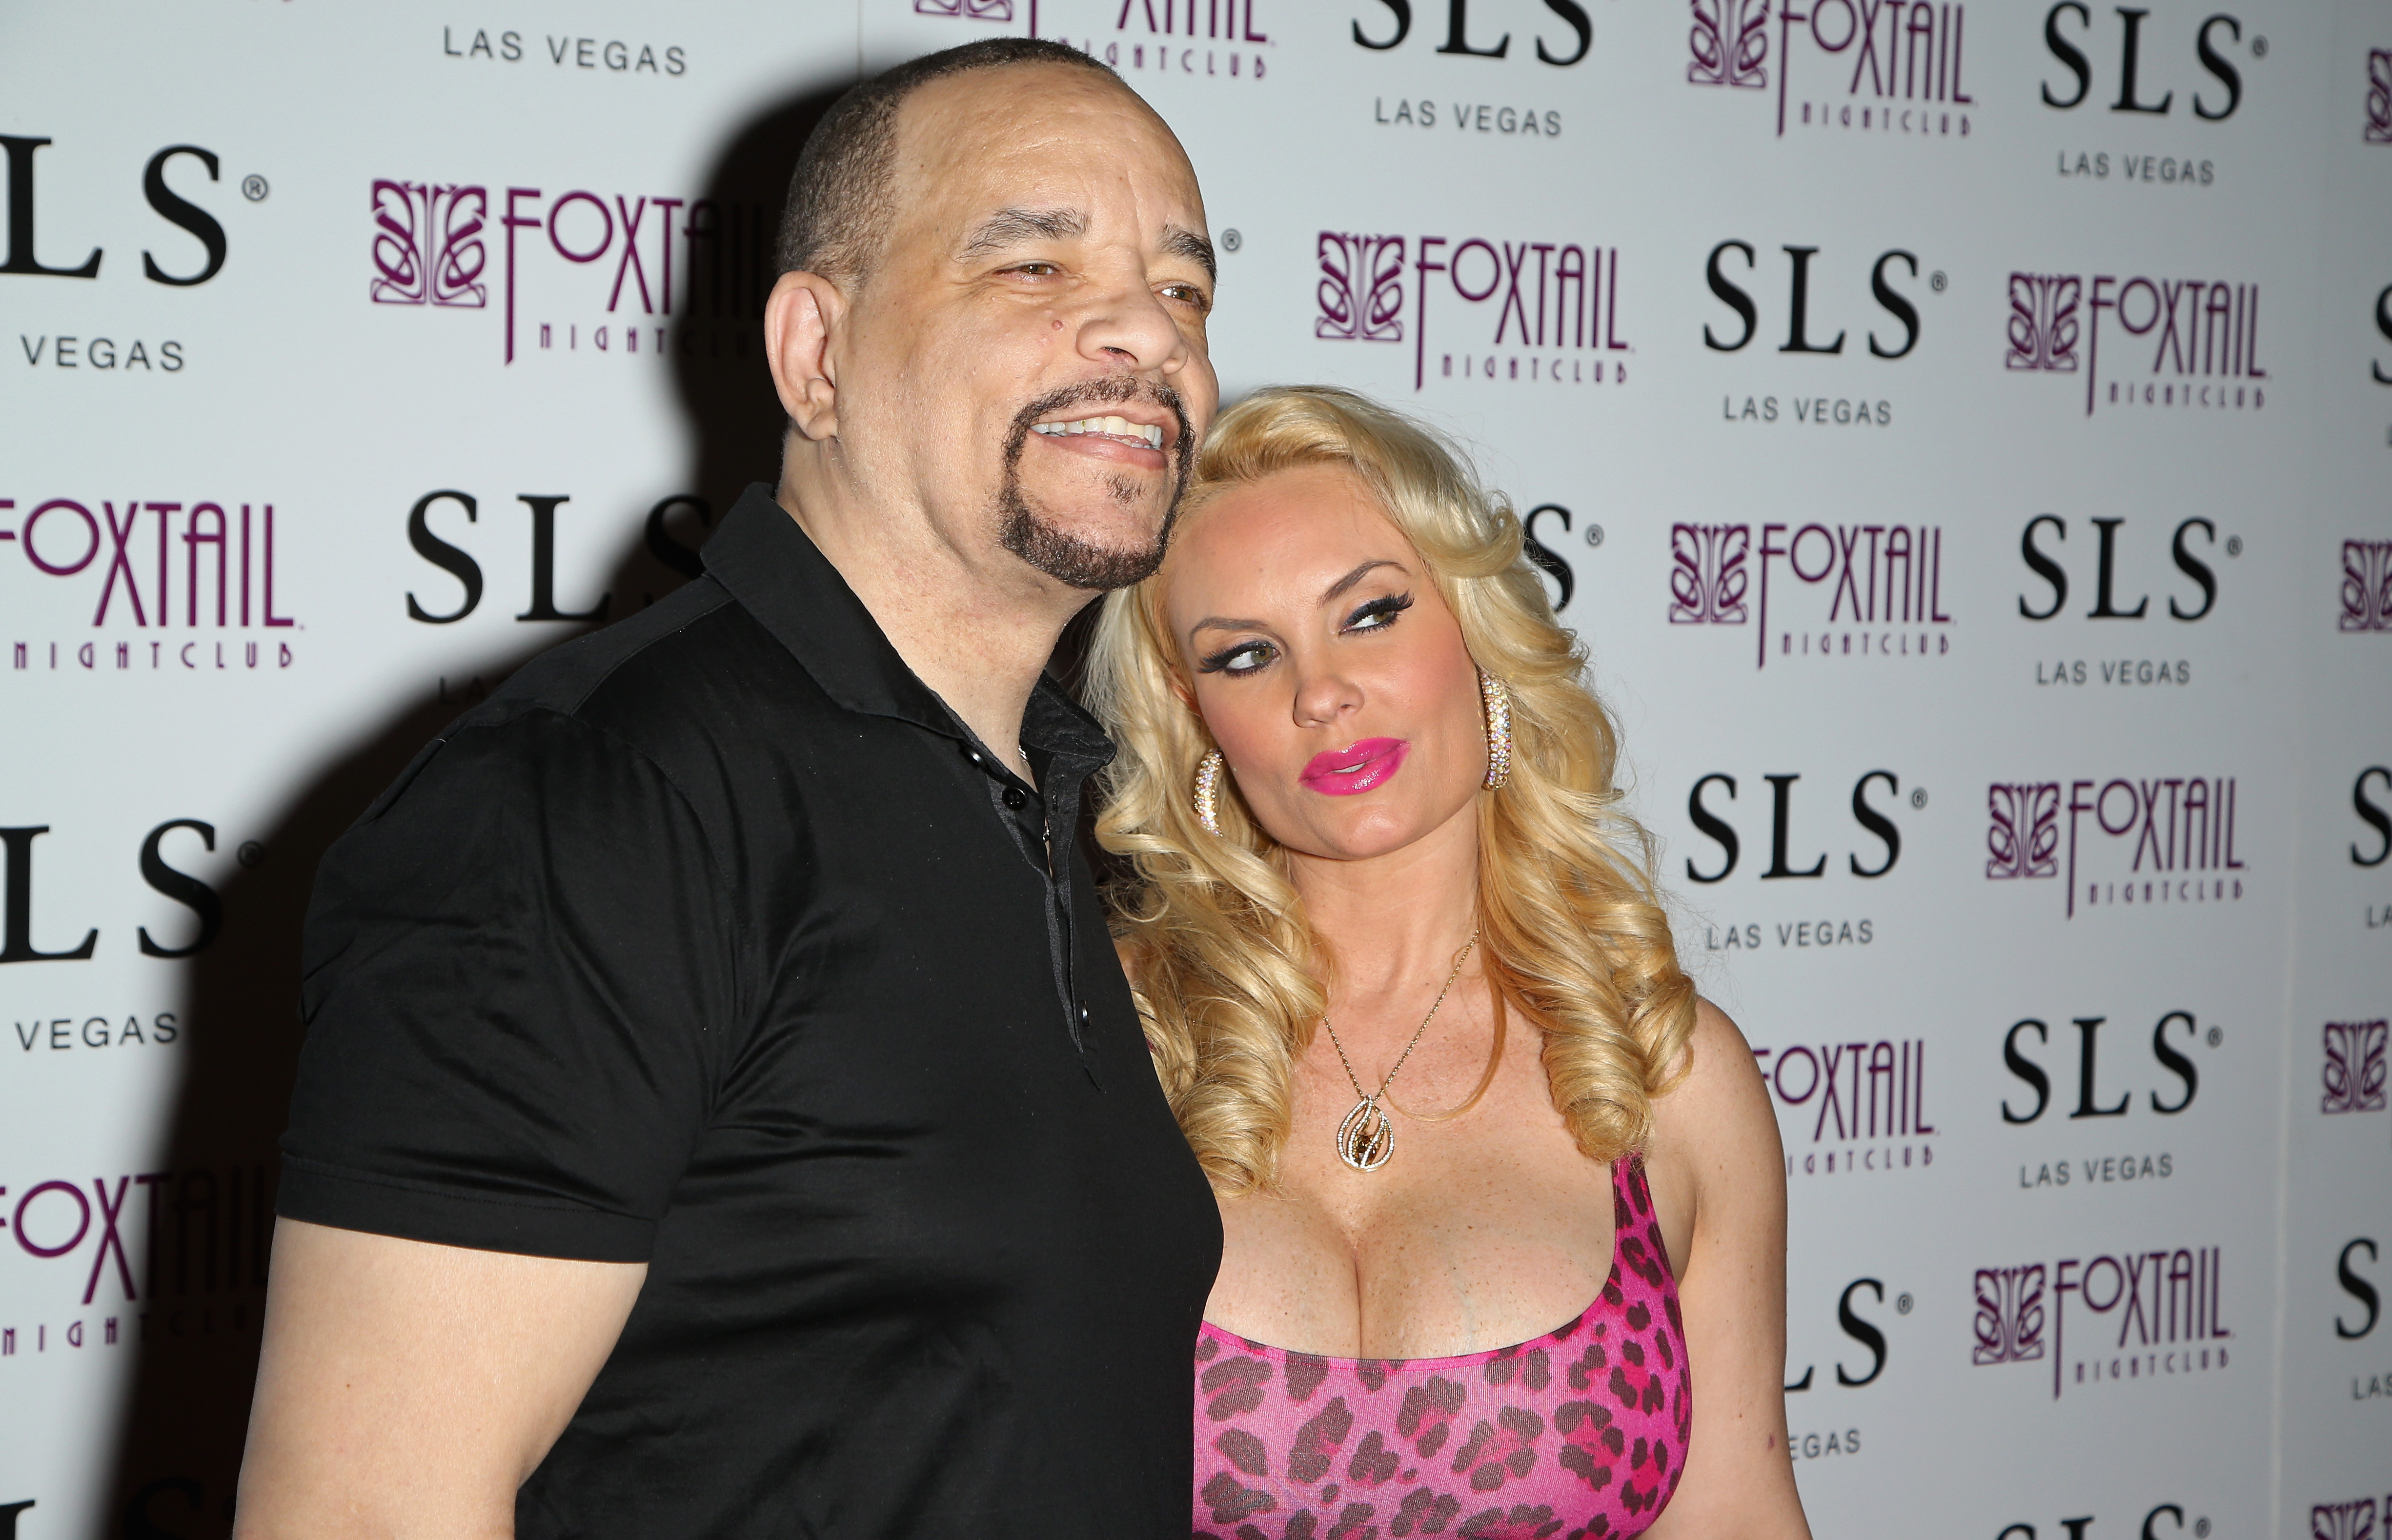 Nicole 'Coco' Austin's Birthday Celebration At Foxtail Nightclub